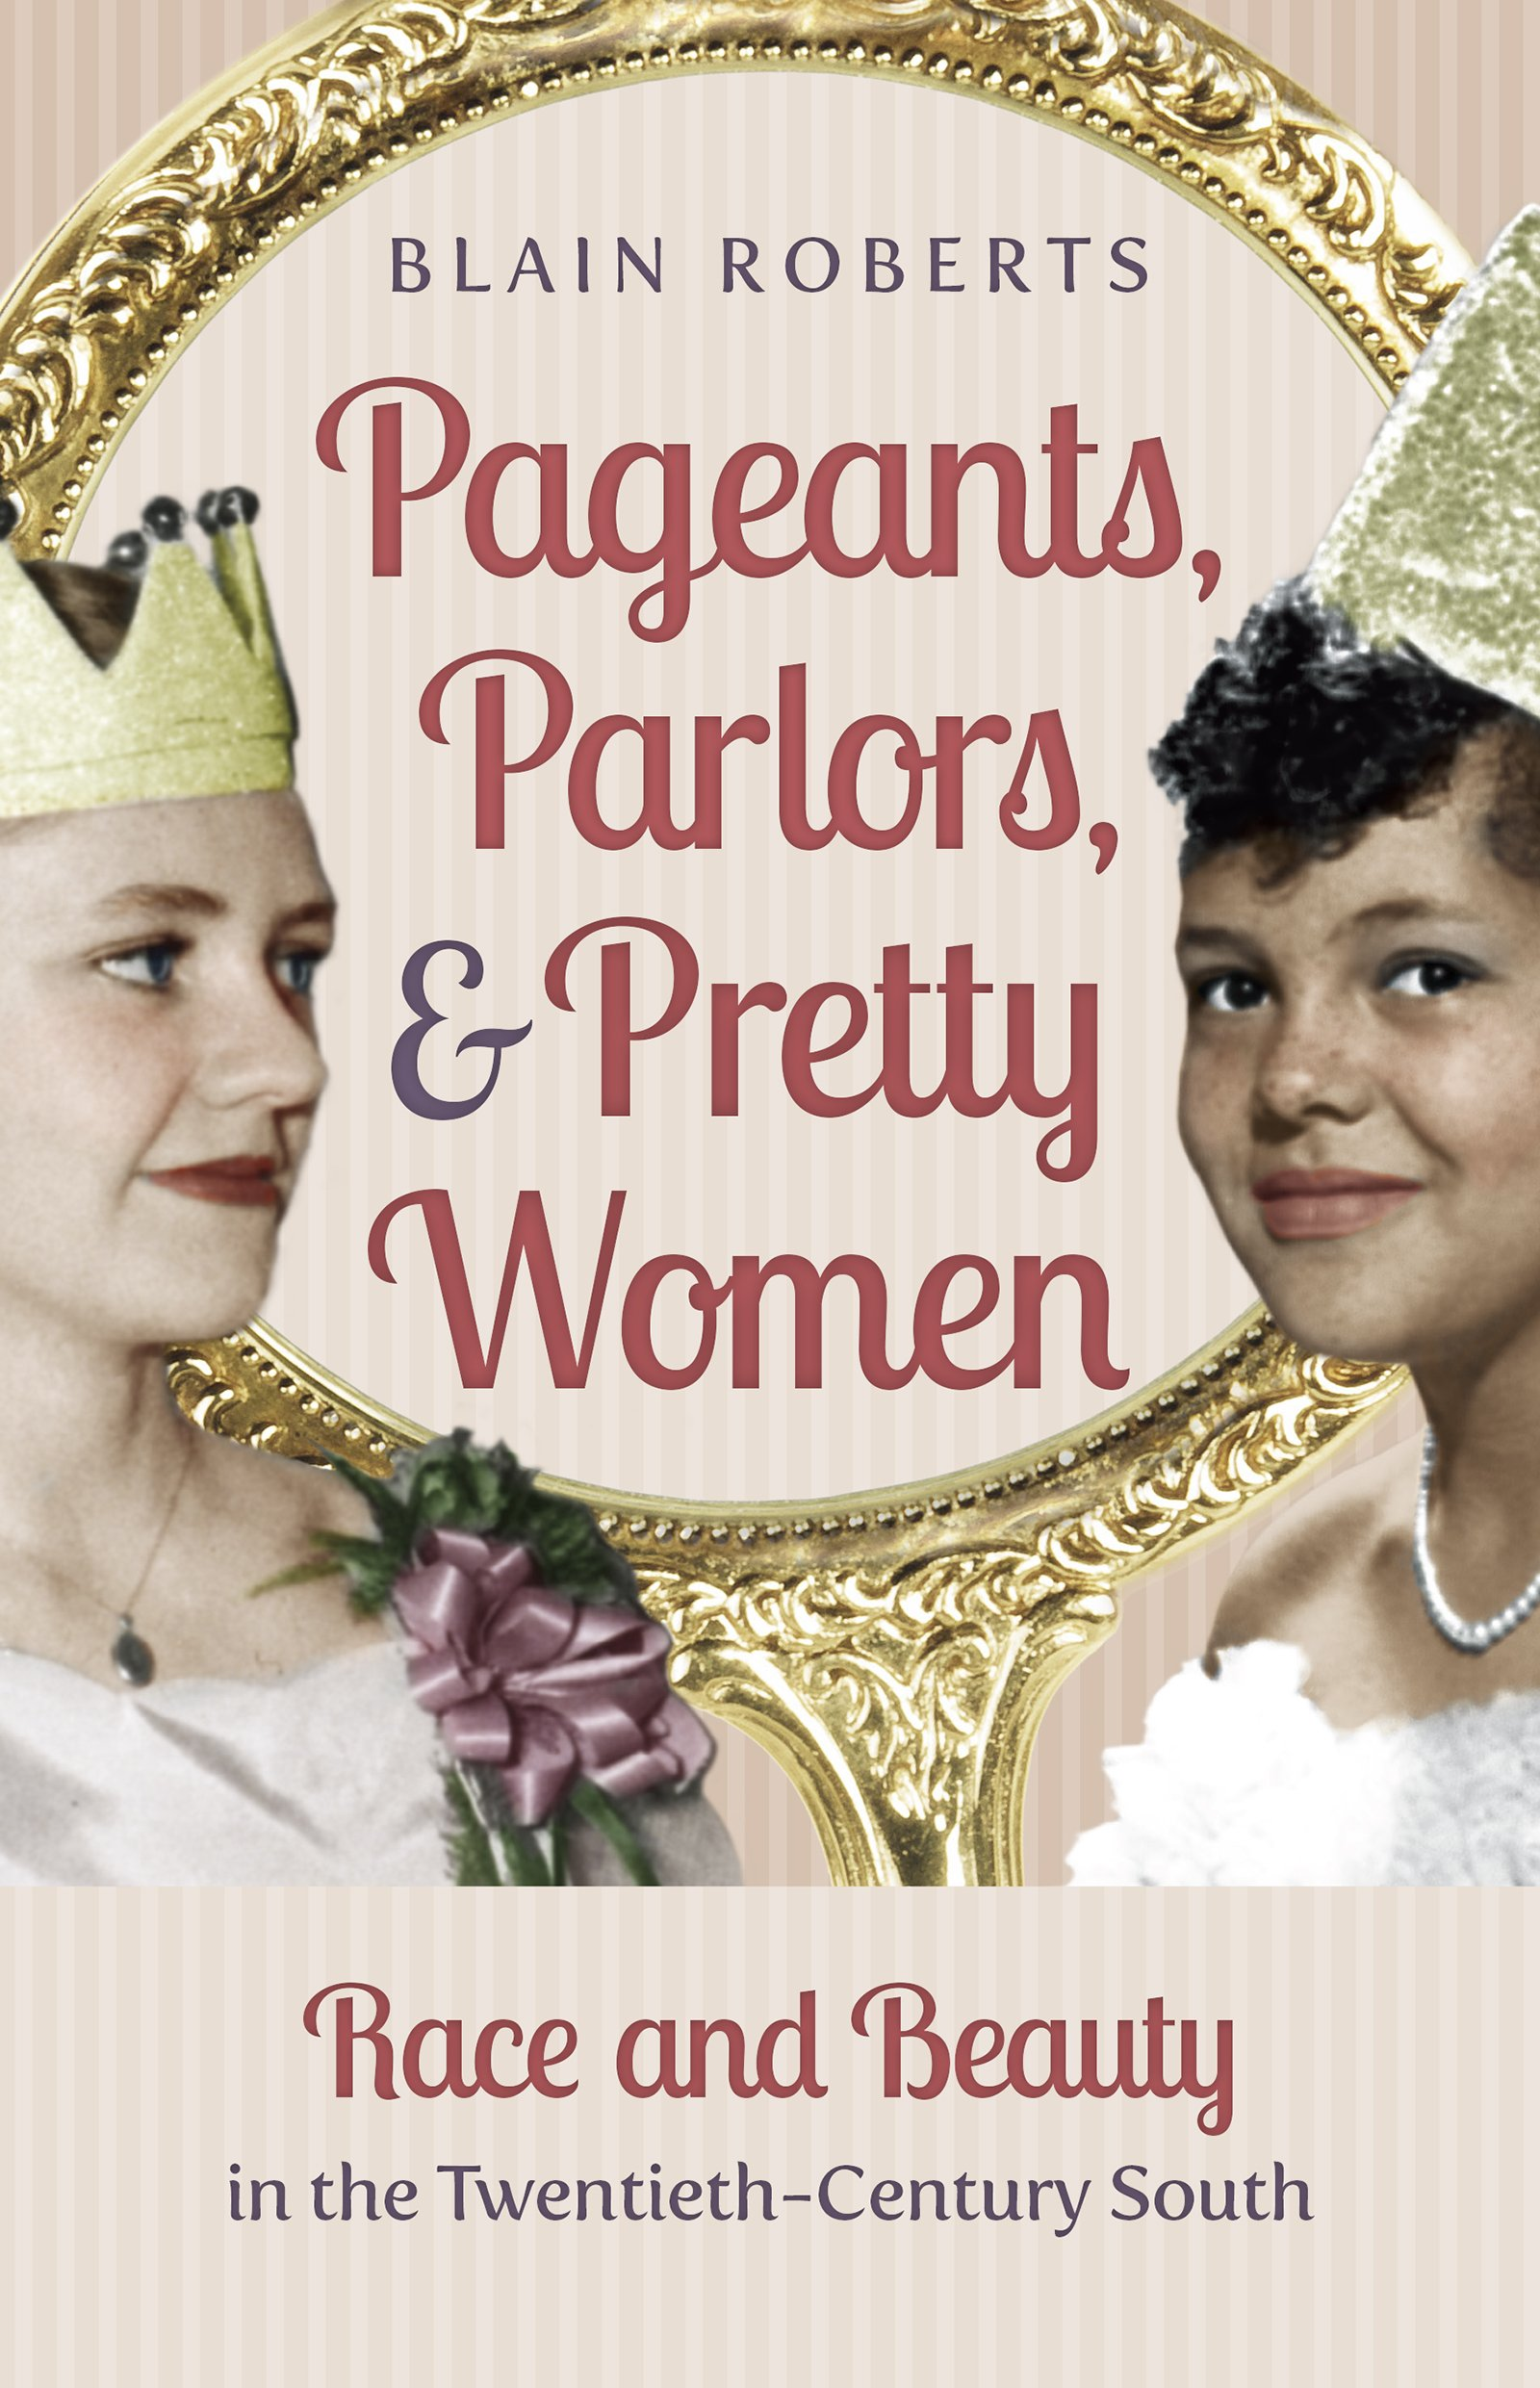 buy pageants parlors and pretty women race and beauty in the  buy pageants parlors and pretty women race and beauty in the twentieth century south book online at low prices in pageants parlors